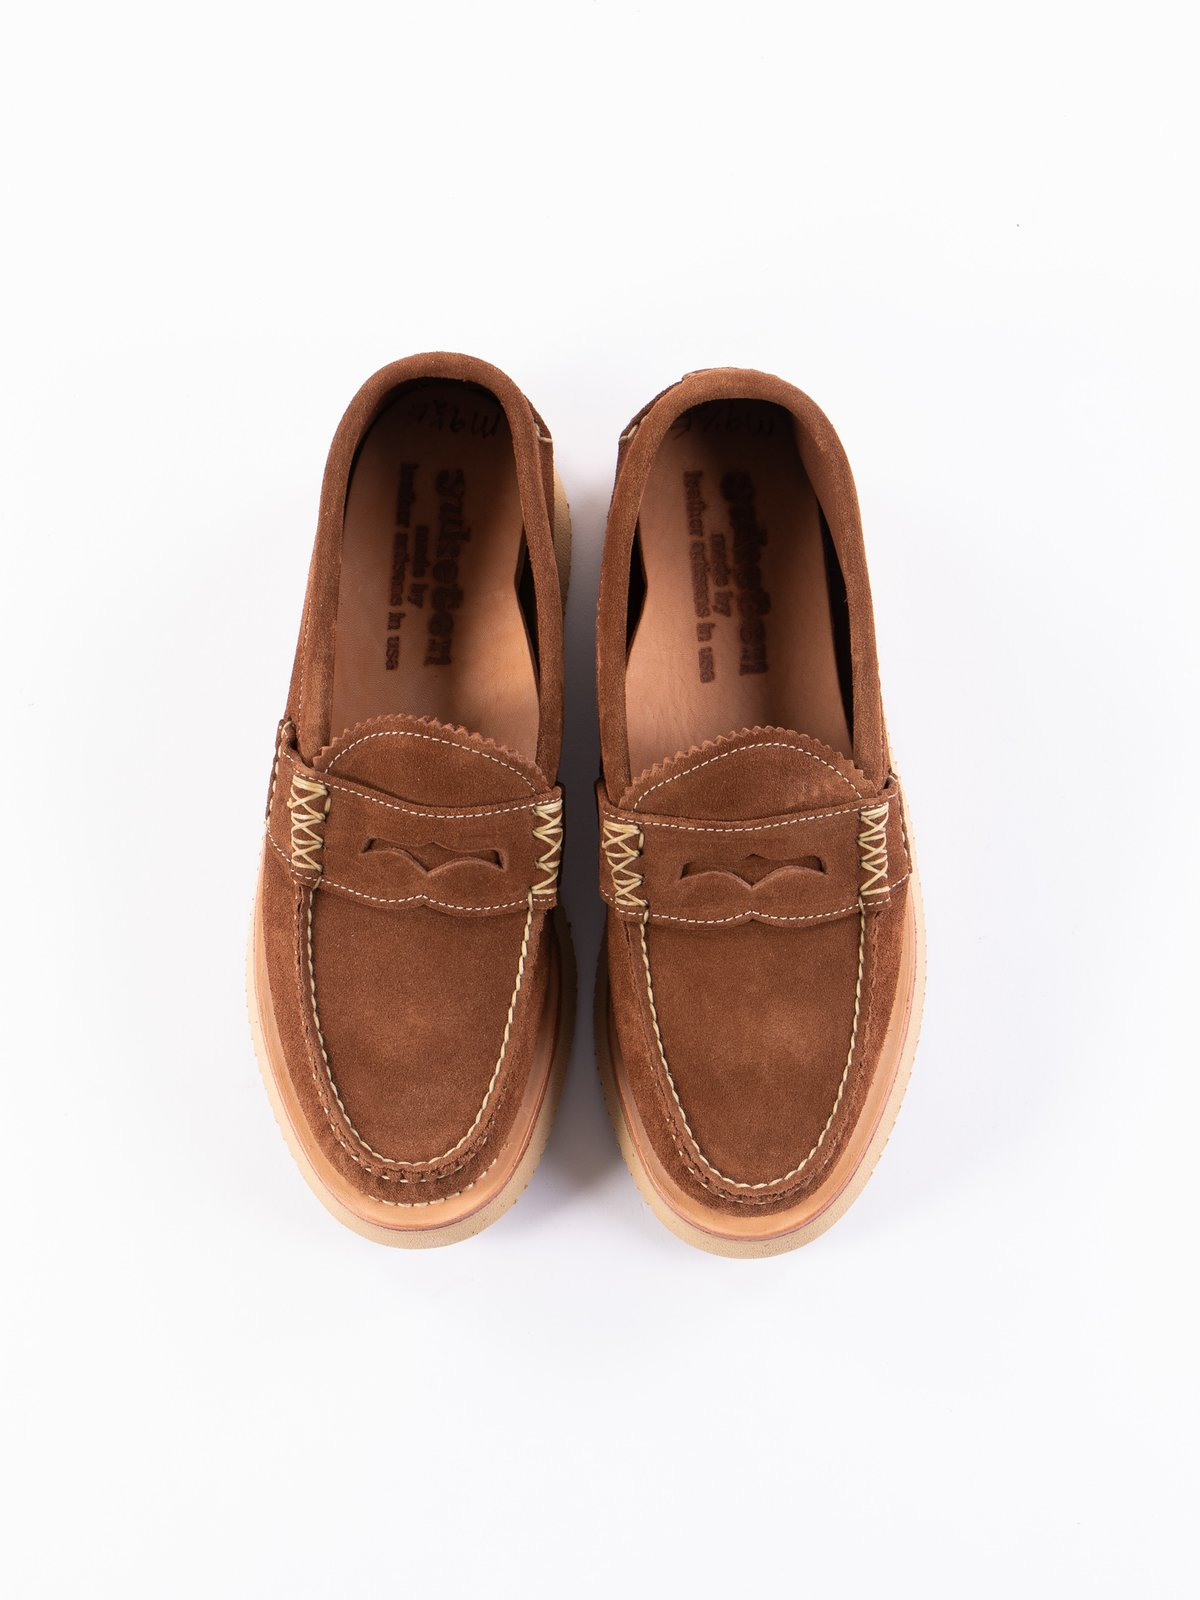 FO Snuff Loafer w/2021 Sole Exclusive - Image 6